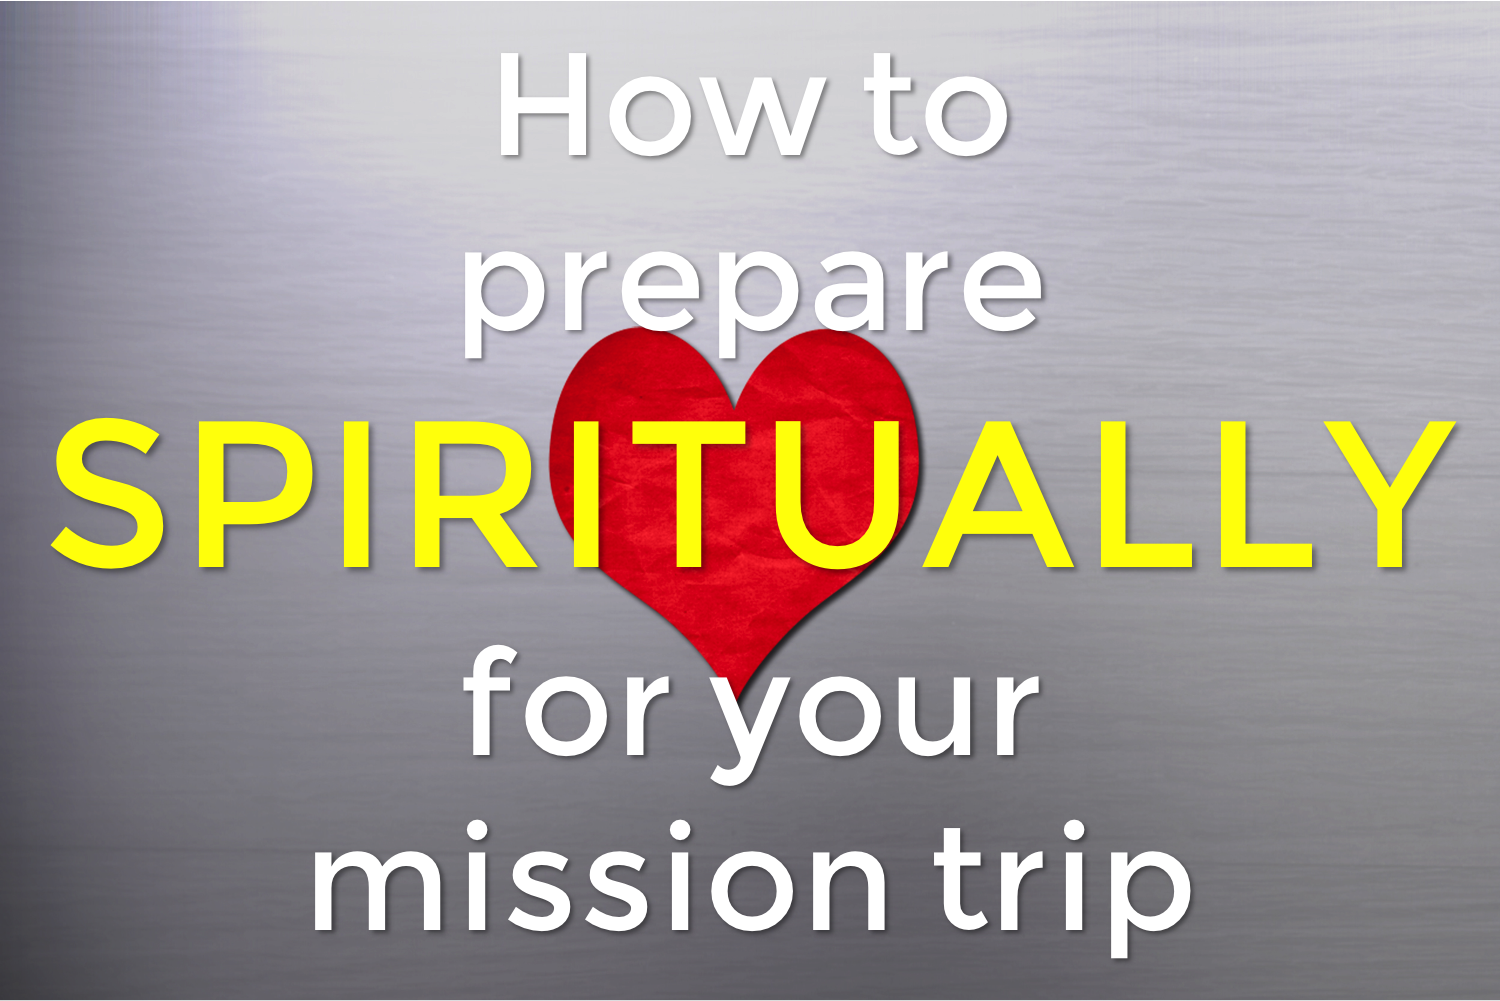 Mission Trip Quotes Revised Updated How To Prepare Spiritually For Your Mission Trip